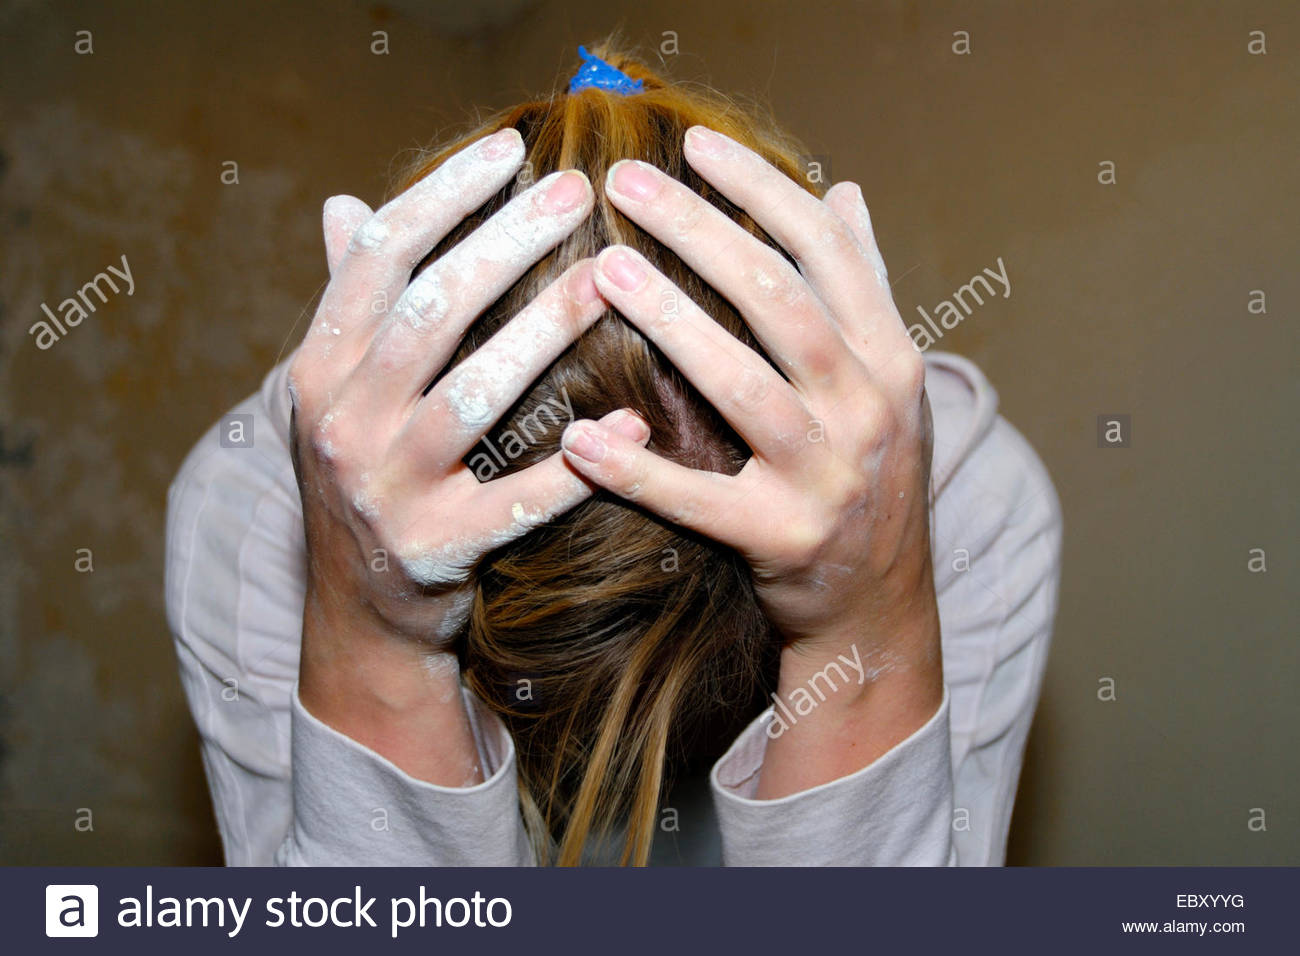 desperate woman, changing her domicile - Stock Image